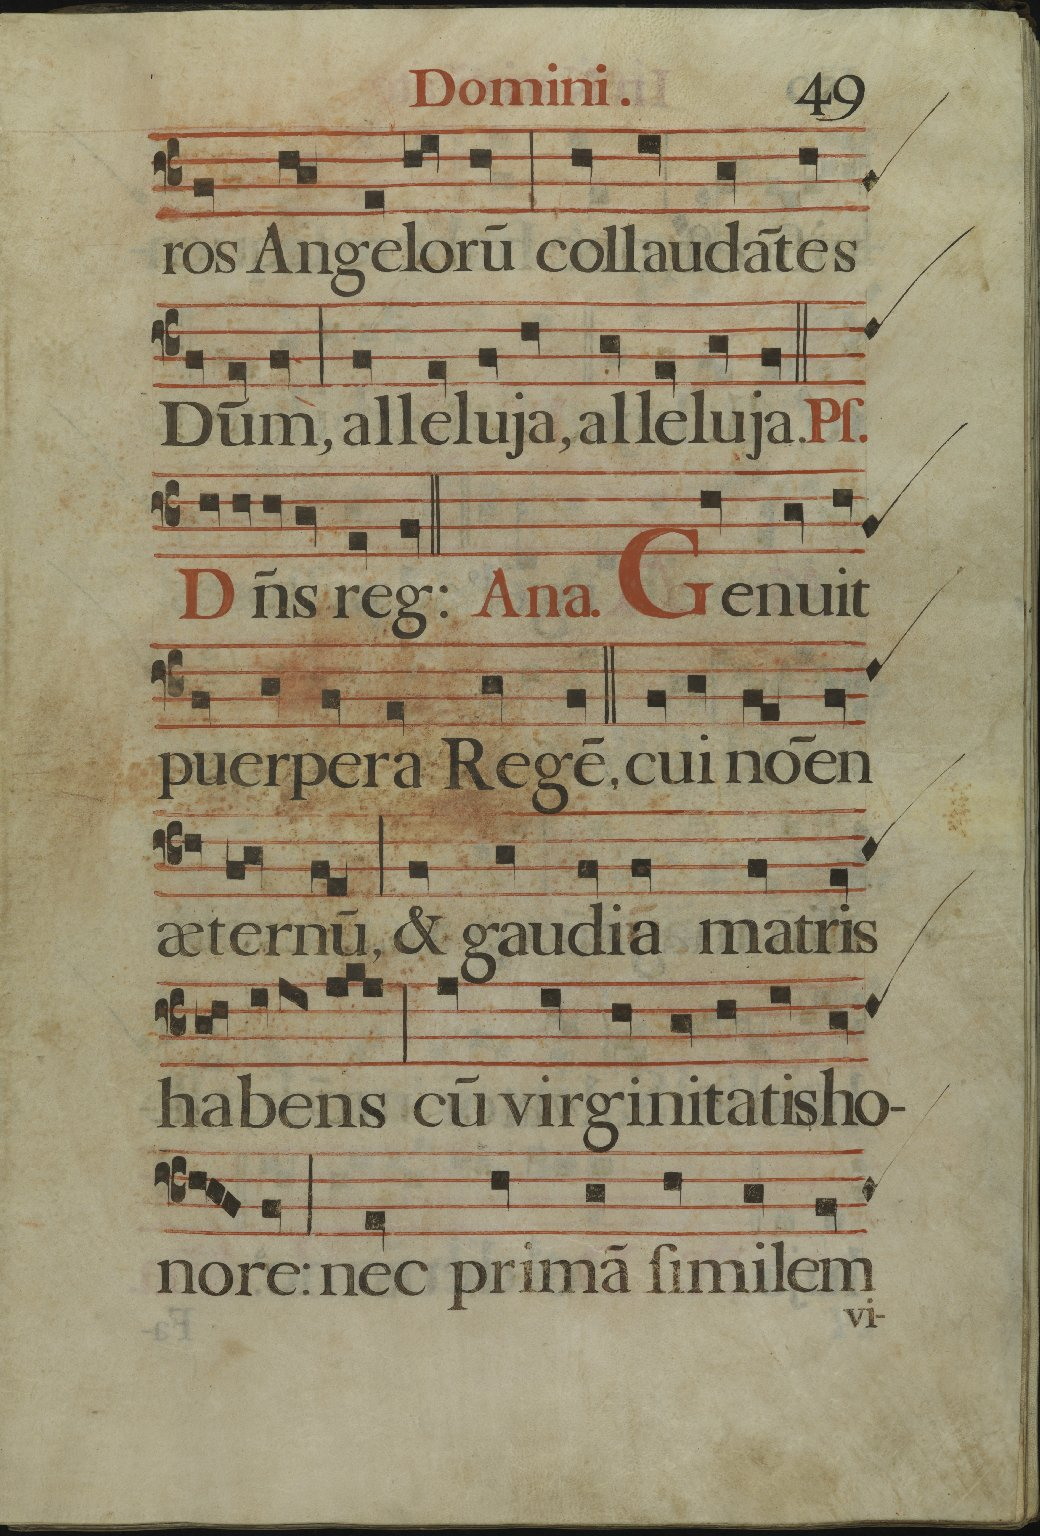 The Spanish Antiphoner. Page 49